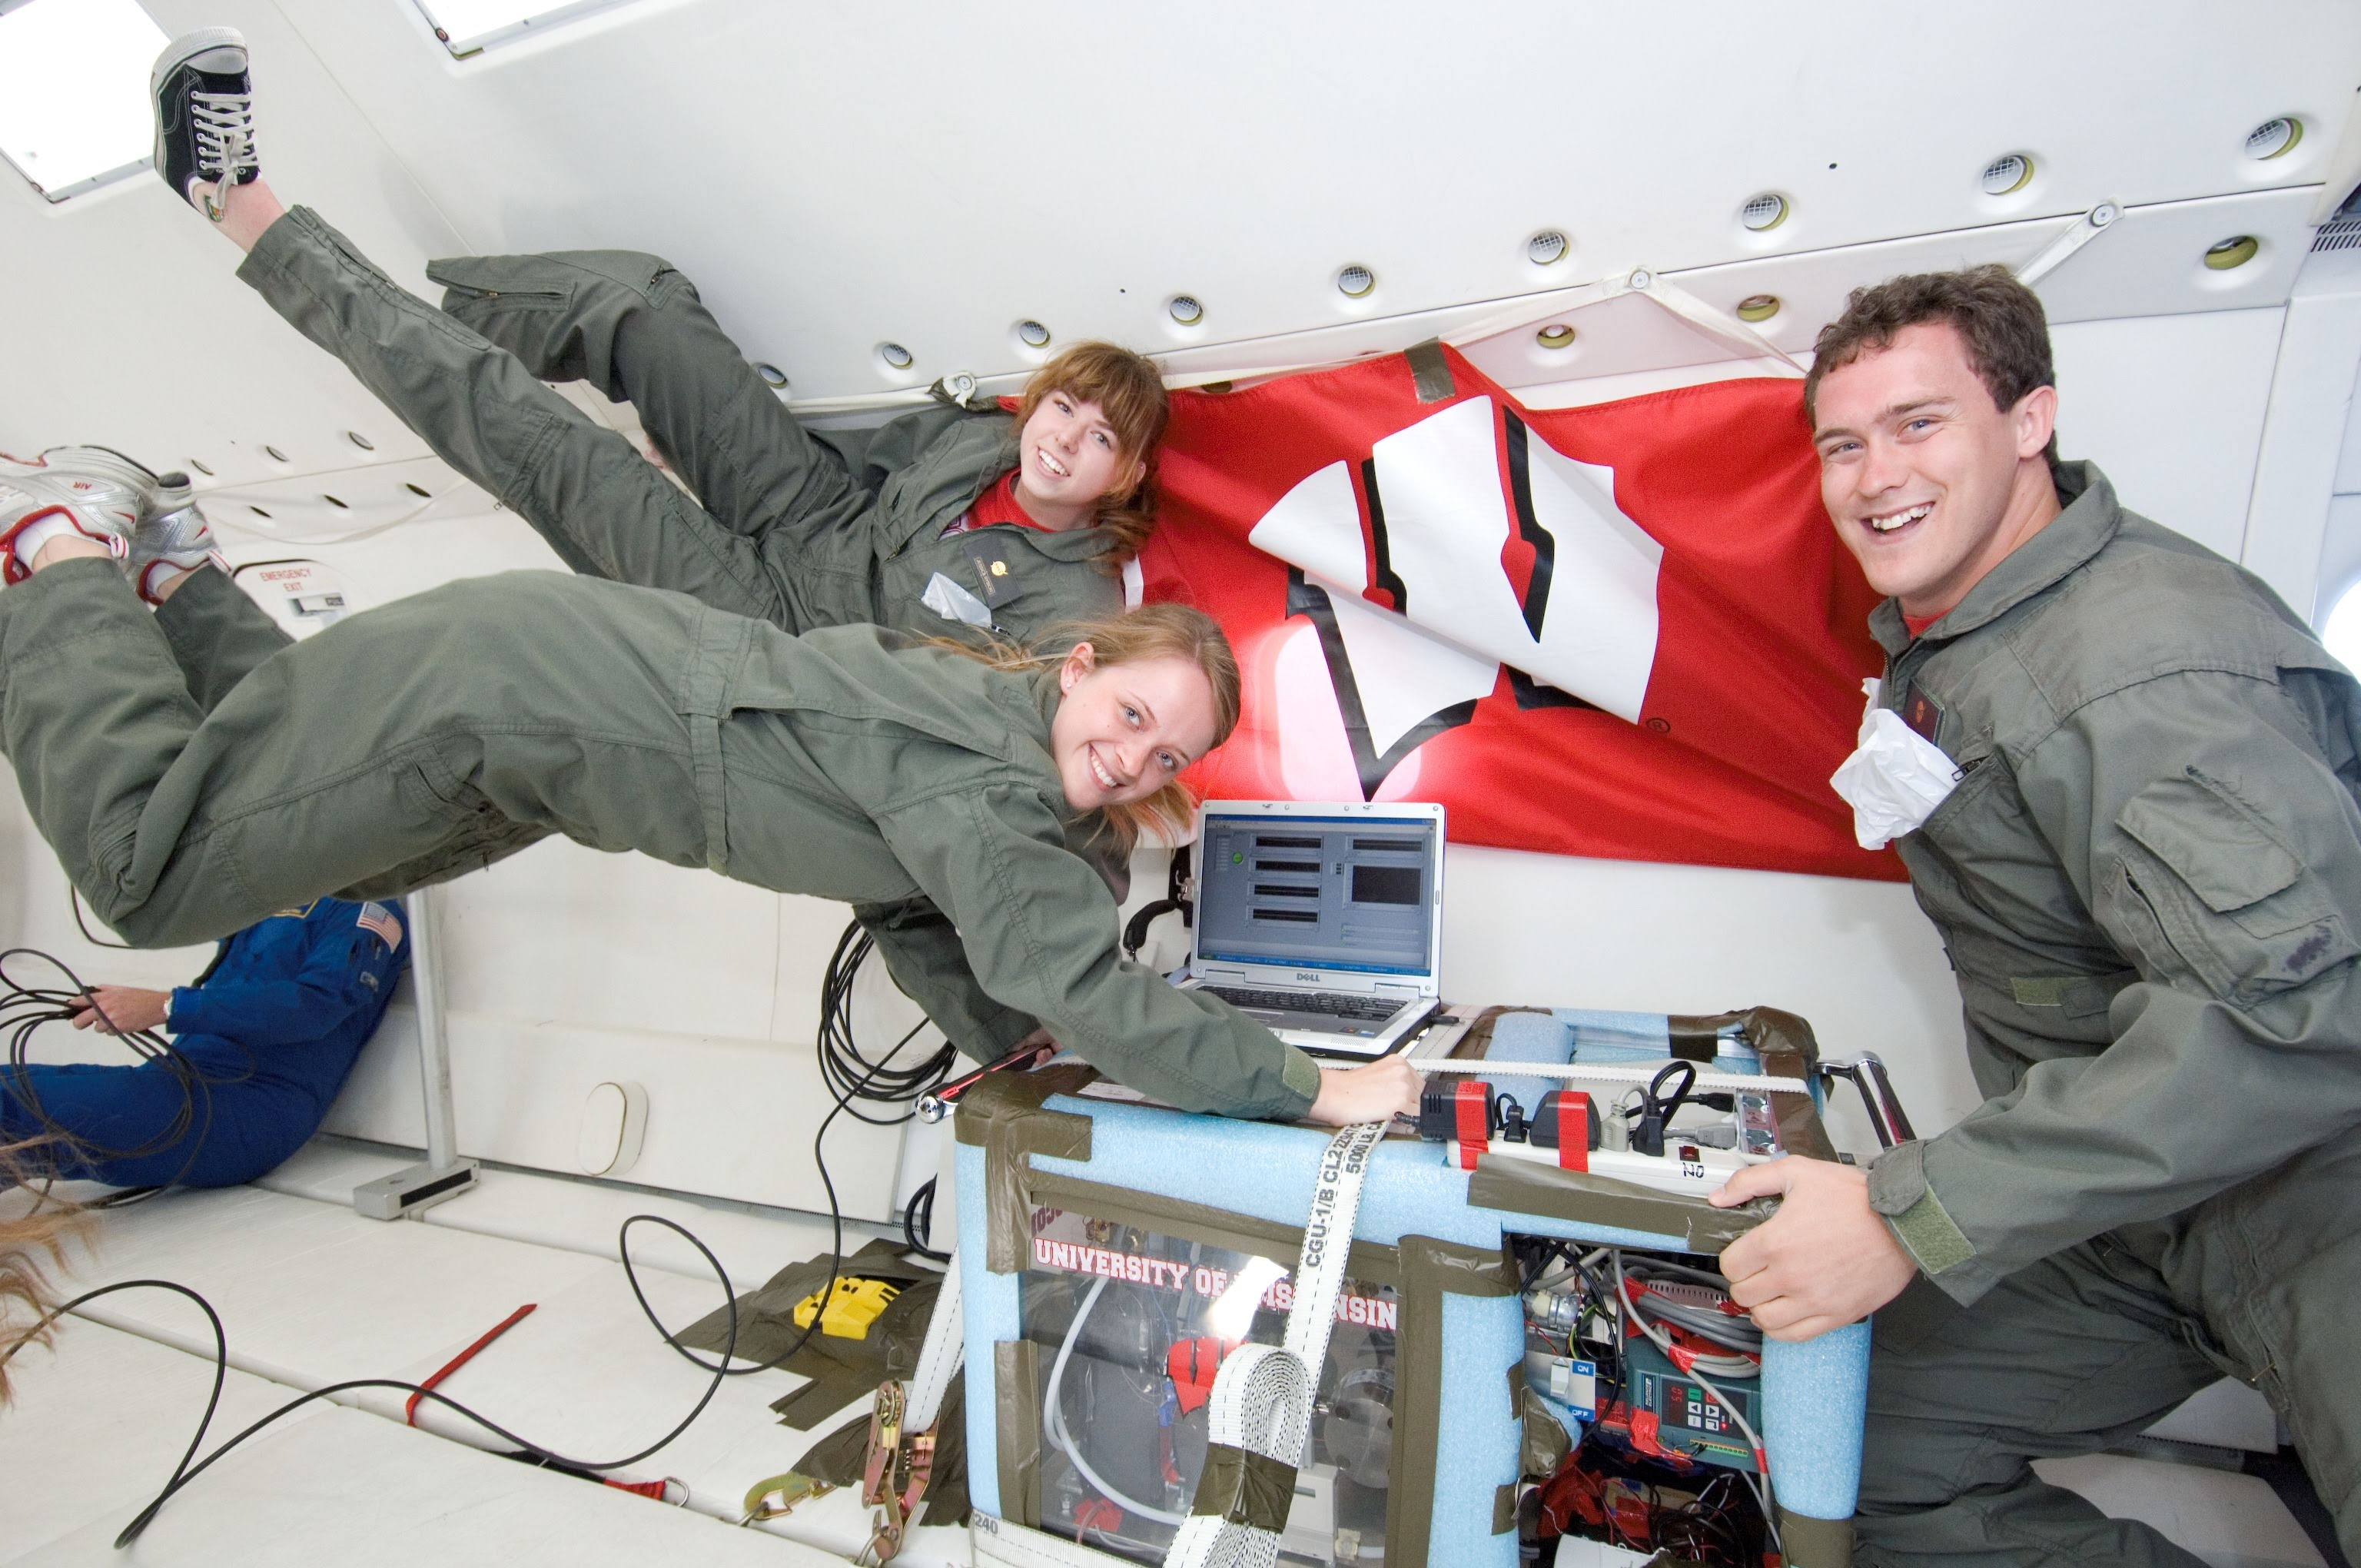 Planet's Lisa McGill and her University of Wisconsin-Madison teammates in NASA's Zero Gravity Weightless Lab. Image courtesy of Lisa McGill.